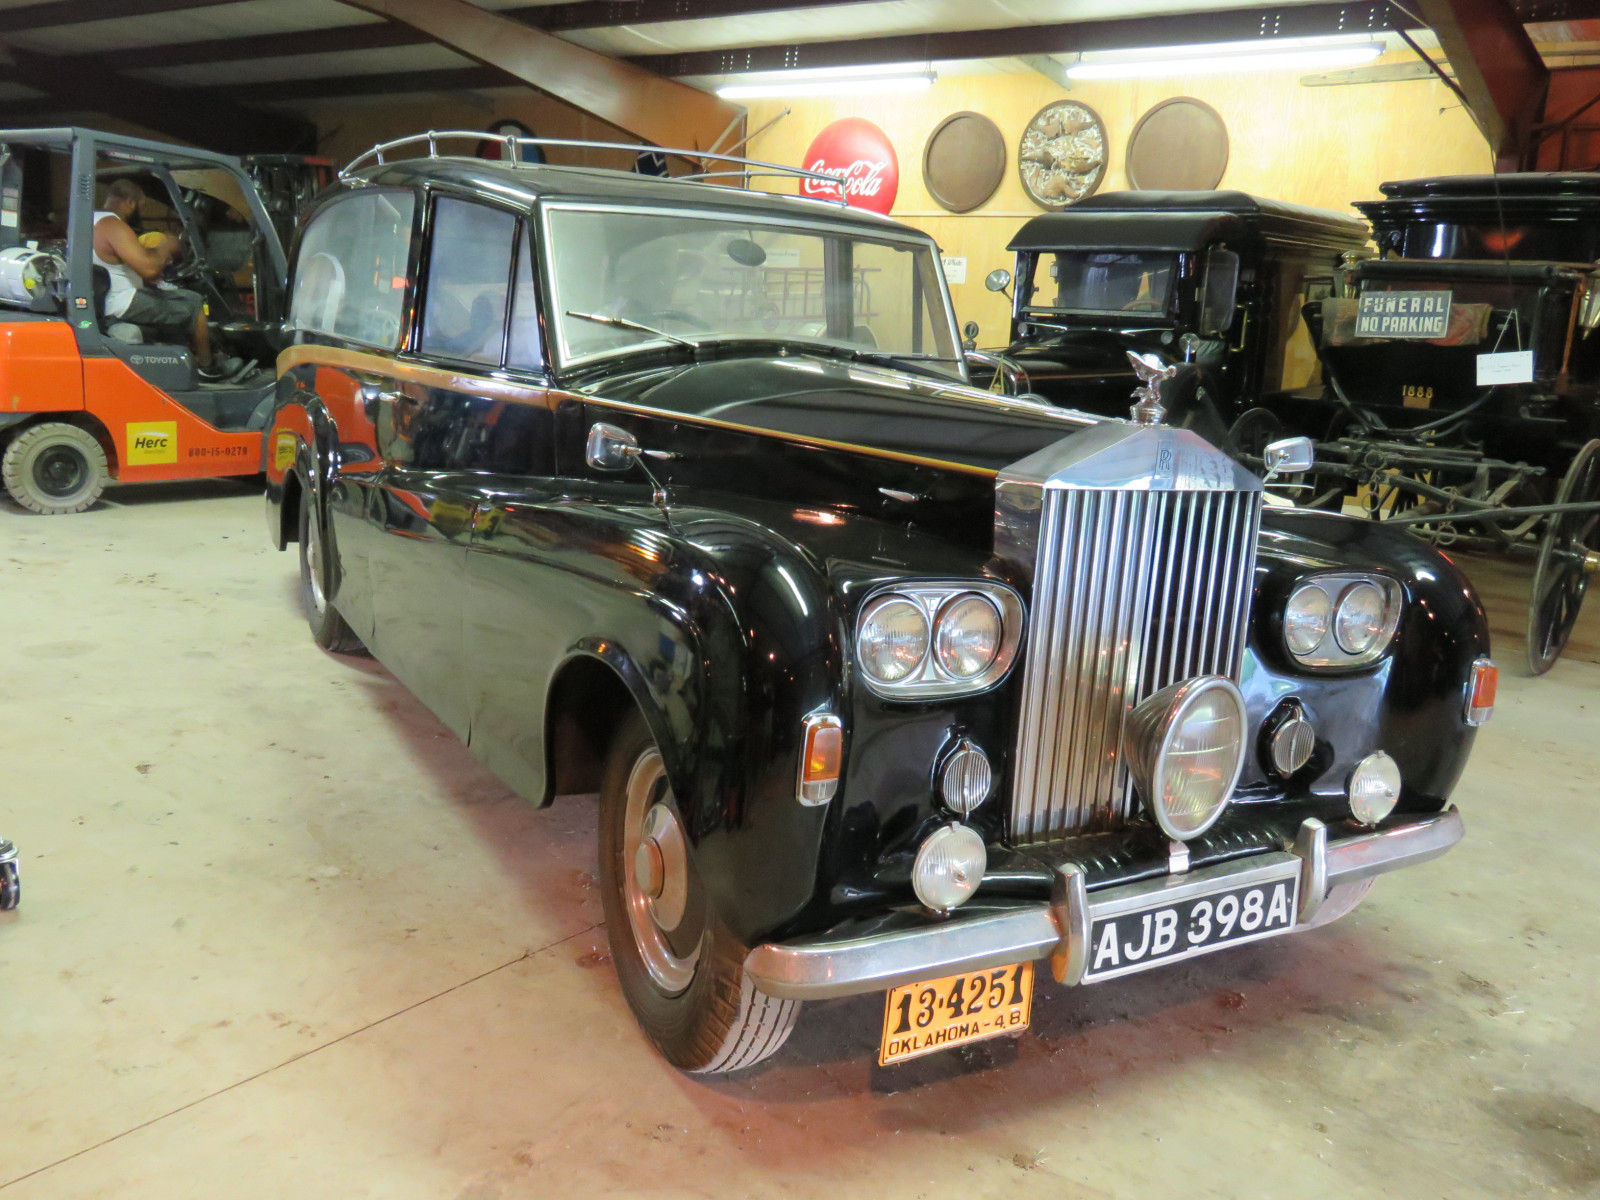 1948 Rolls Royce Silver Wraith Hearse - Image 3